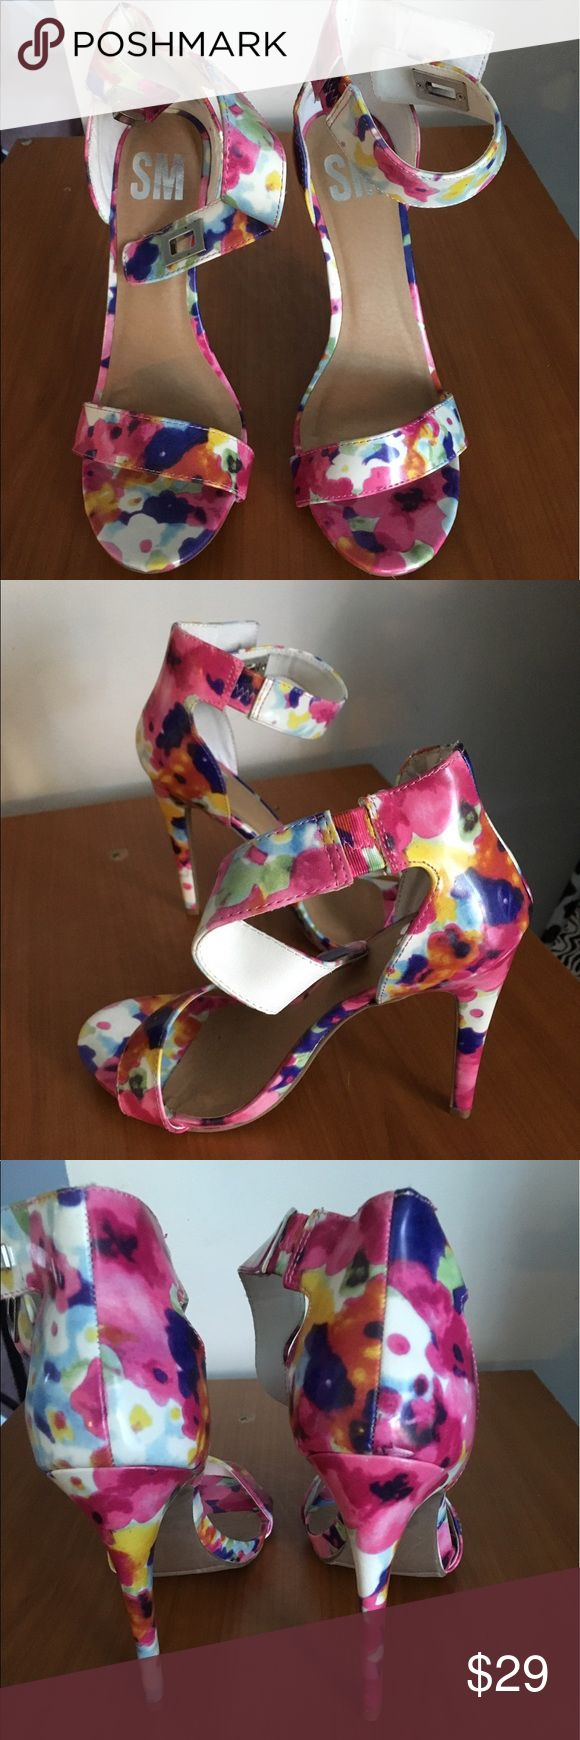 SM Multi Color Sandal Heels In very good condition. Worn 1 time. Heel height is approx 5 inches. SM Shoes Heels